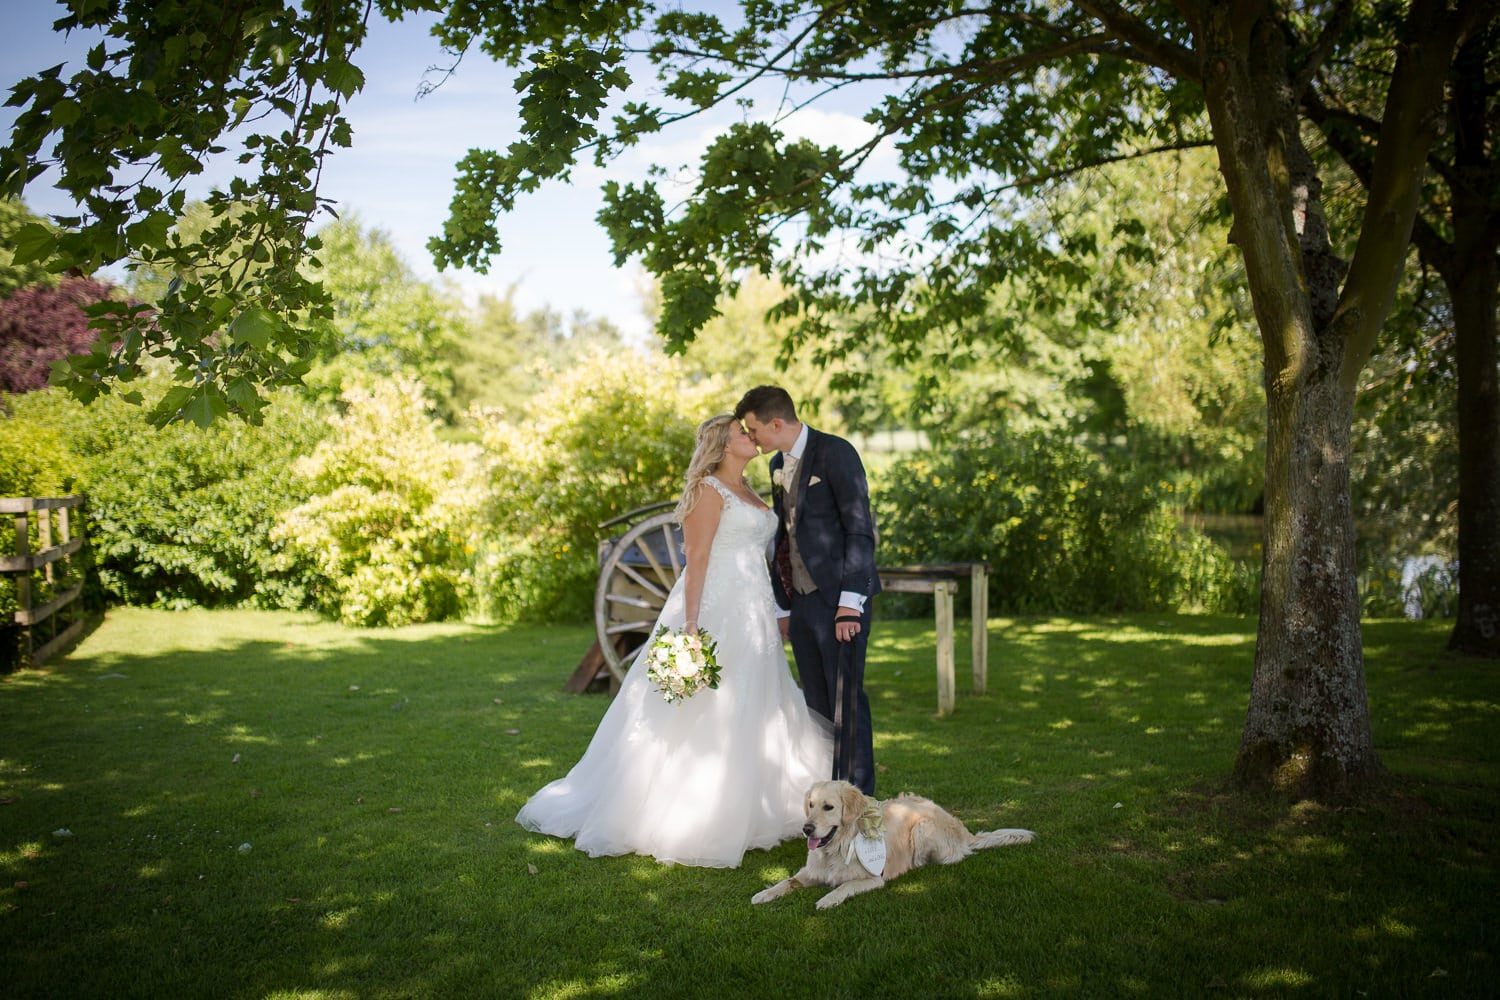 Bride and groom with their dog, at granary barns image used for wedding photography pricing.